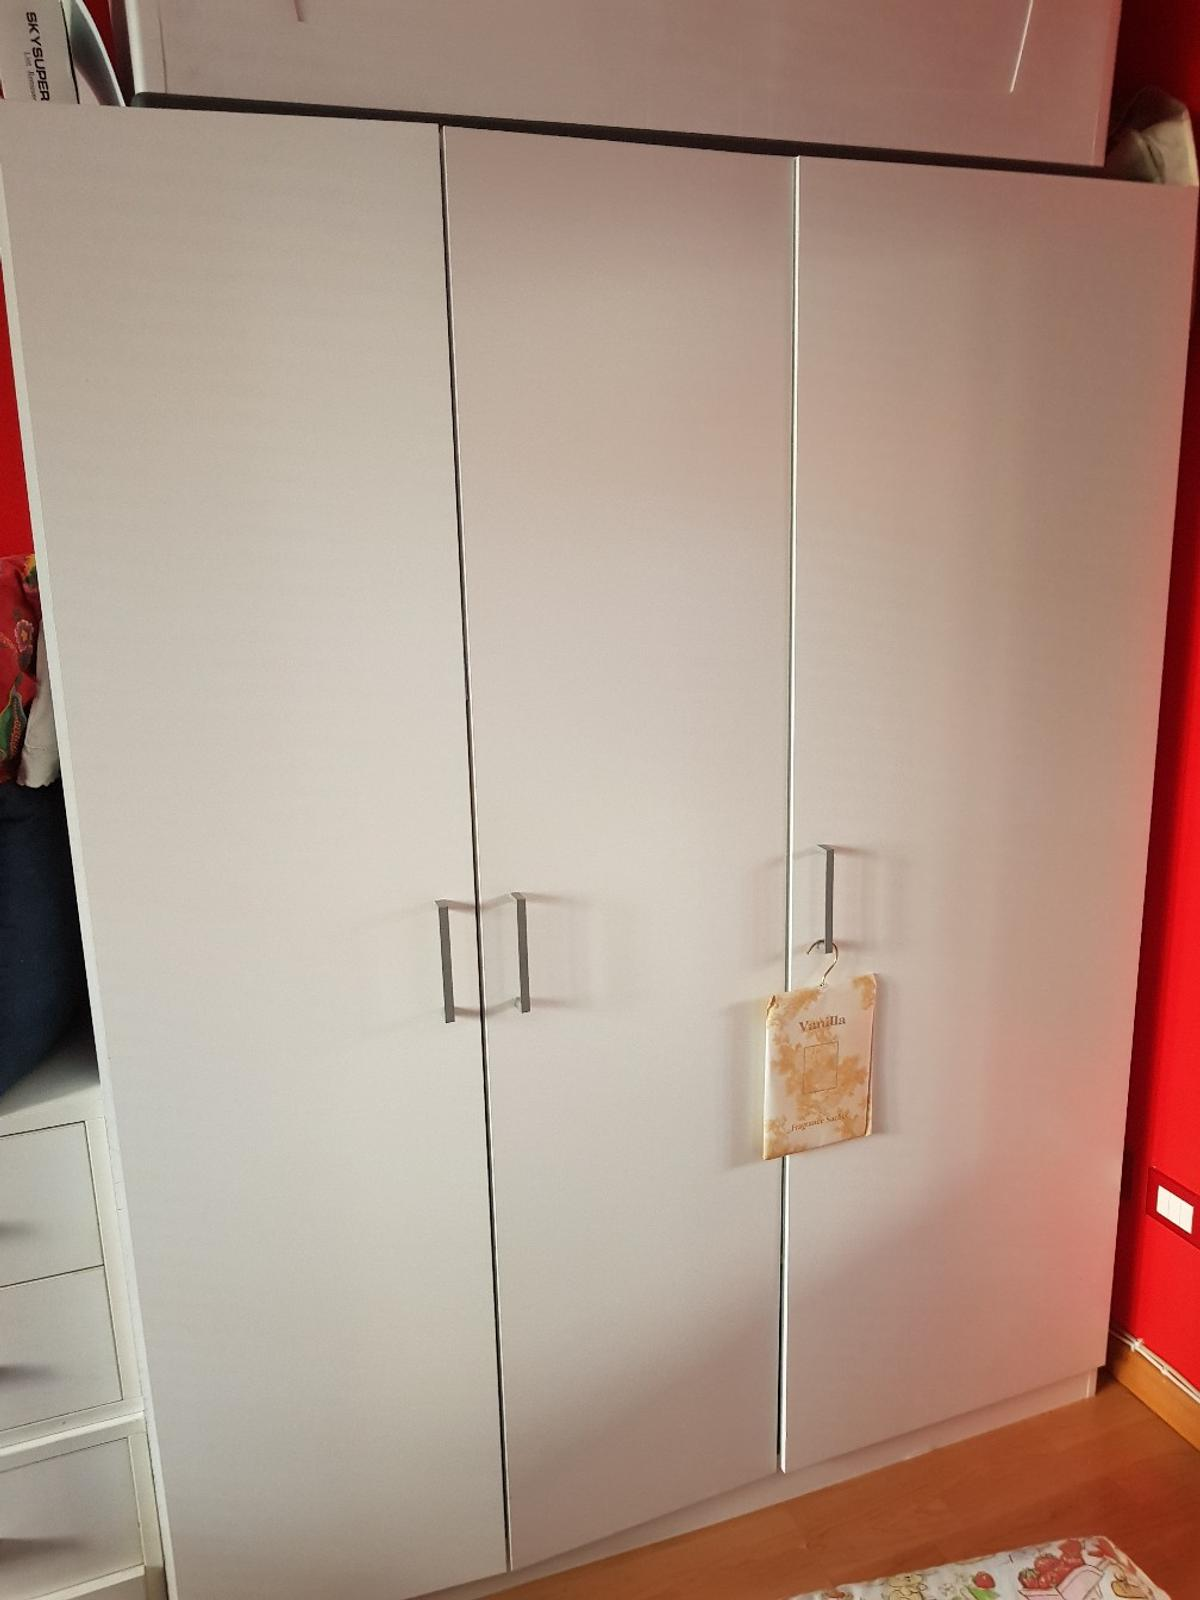 Armadio 3 Ante Ikea.Armadio 3 Ante Ikea In 20141 Milano For 50 00 For Sale Shpock